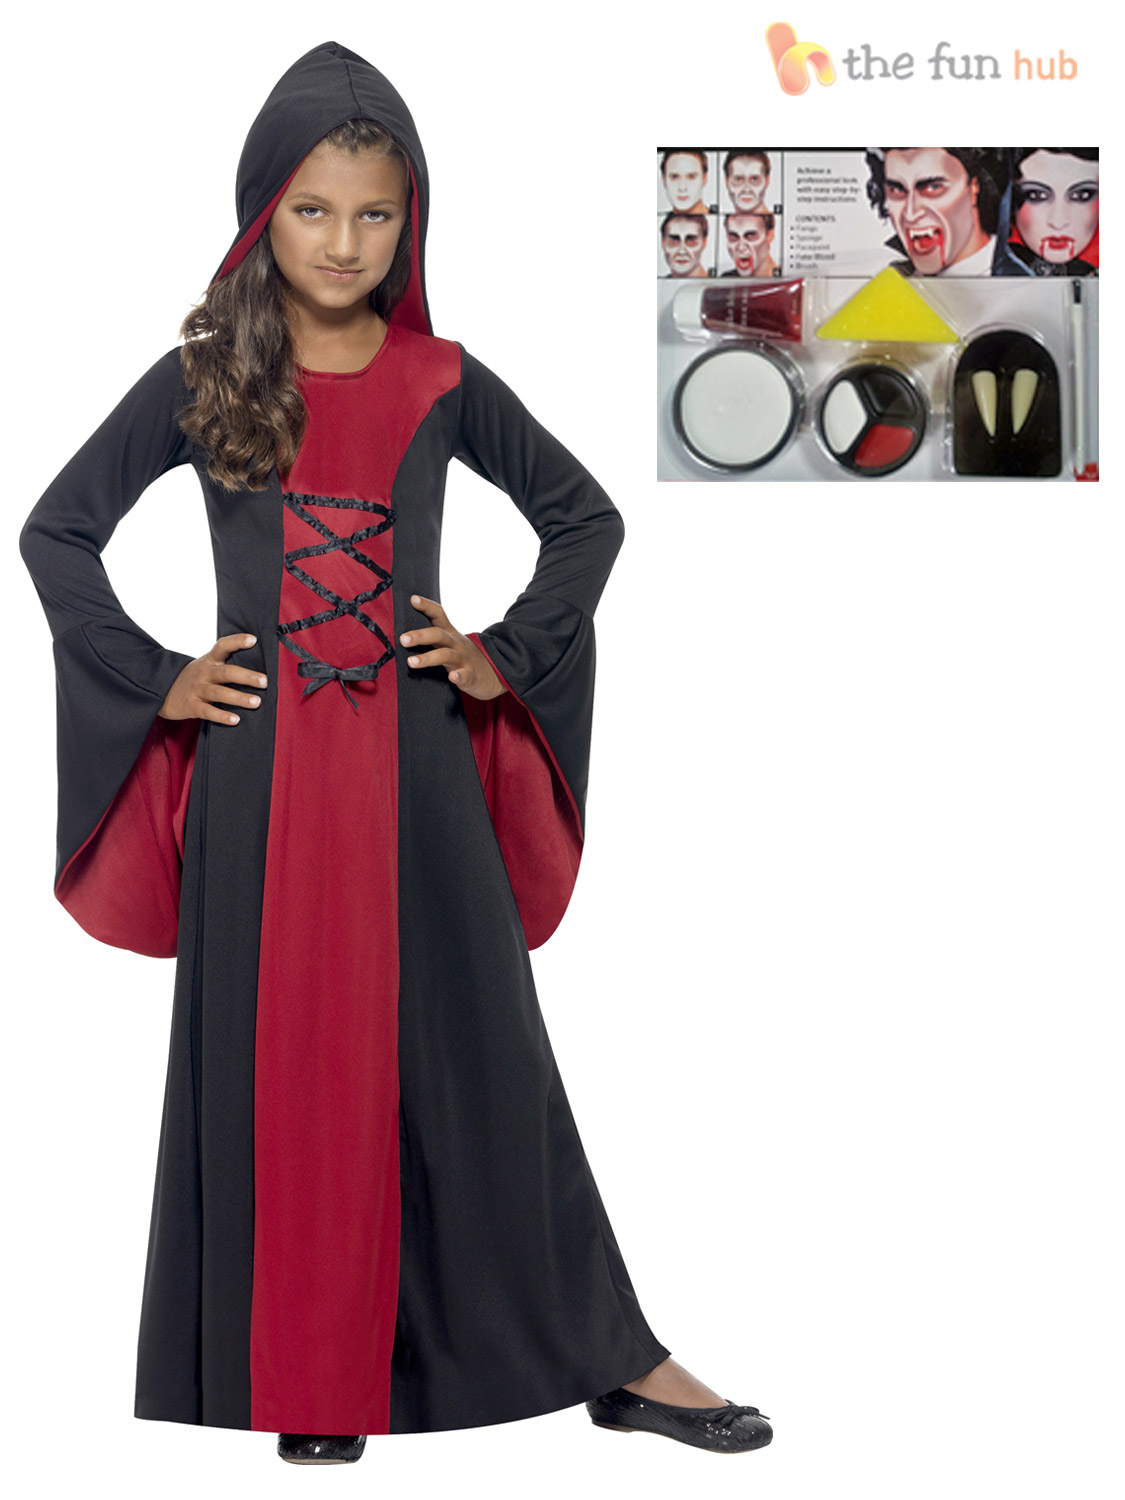 Age-3-10-Girls-Hooded-V&ire-Costume-Make-  sc 1 st  eBay & Age 3-10 Girls Hooded Vampire Costume + Make Up Kit Fancy Dress Kids ...